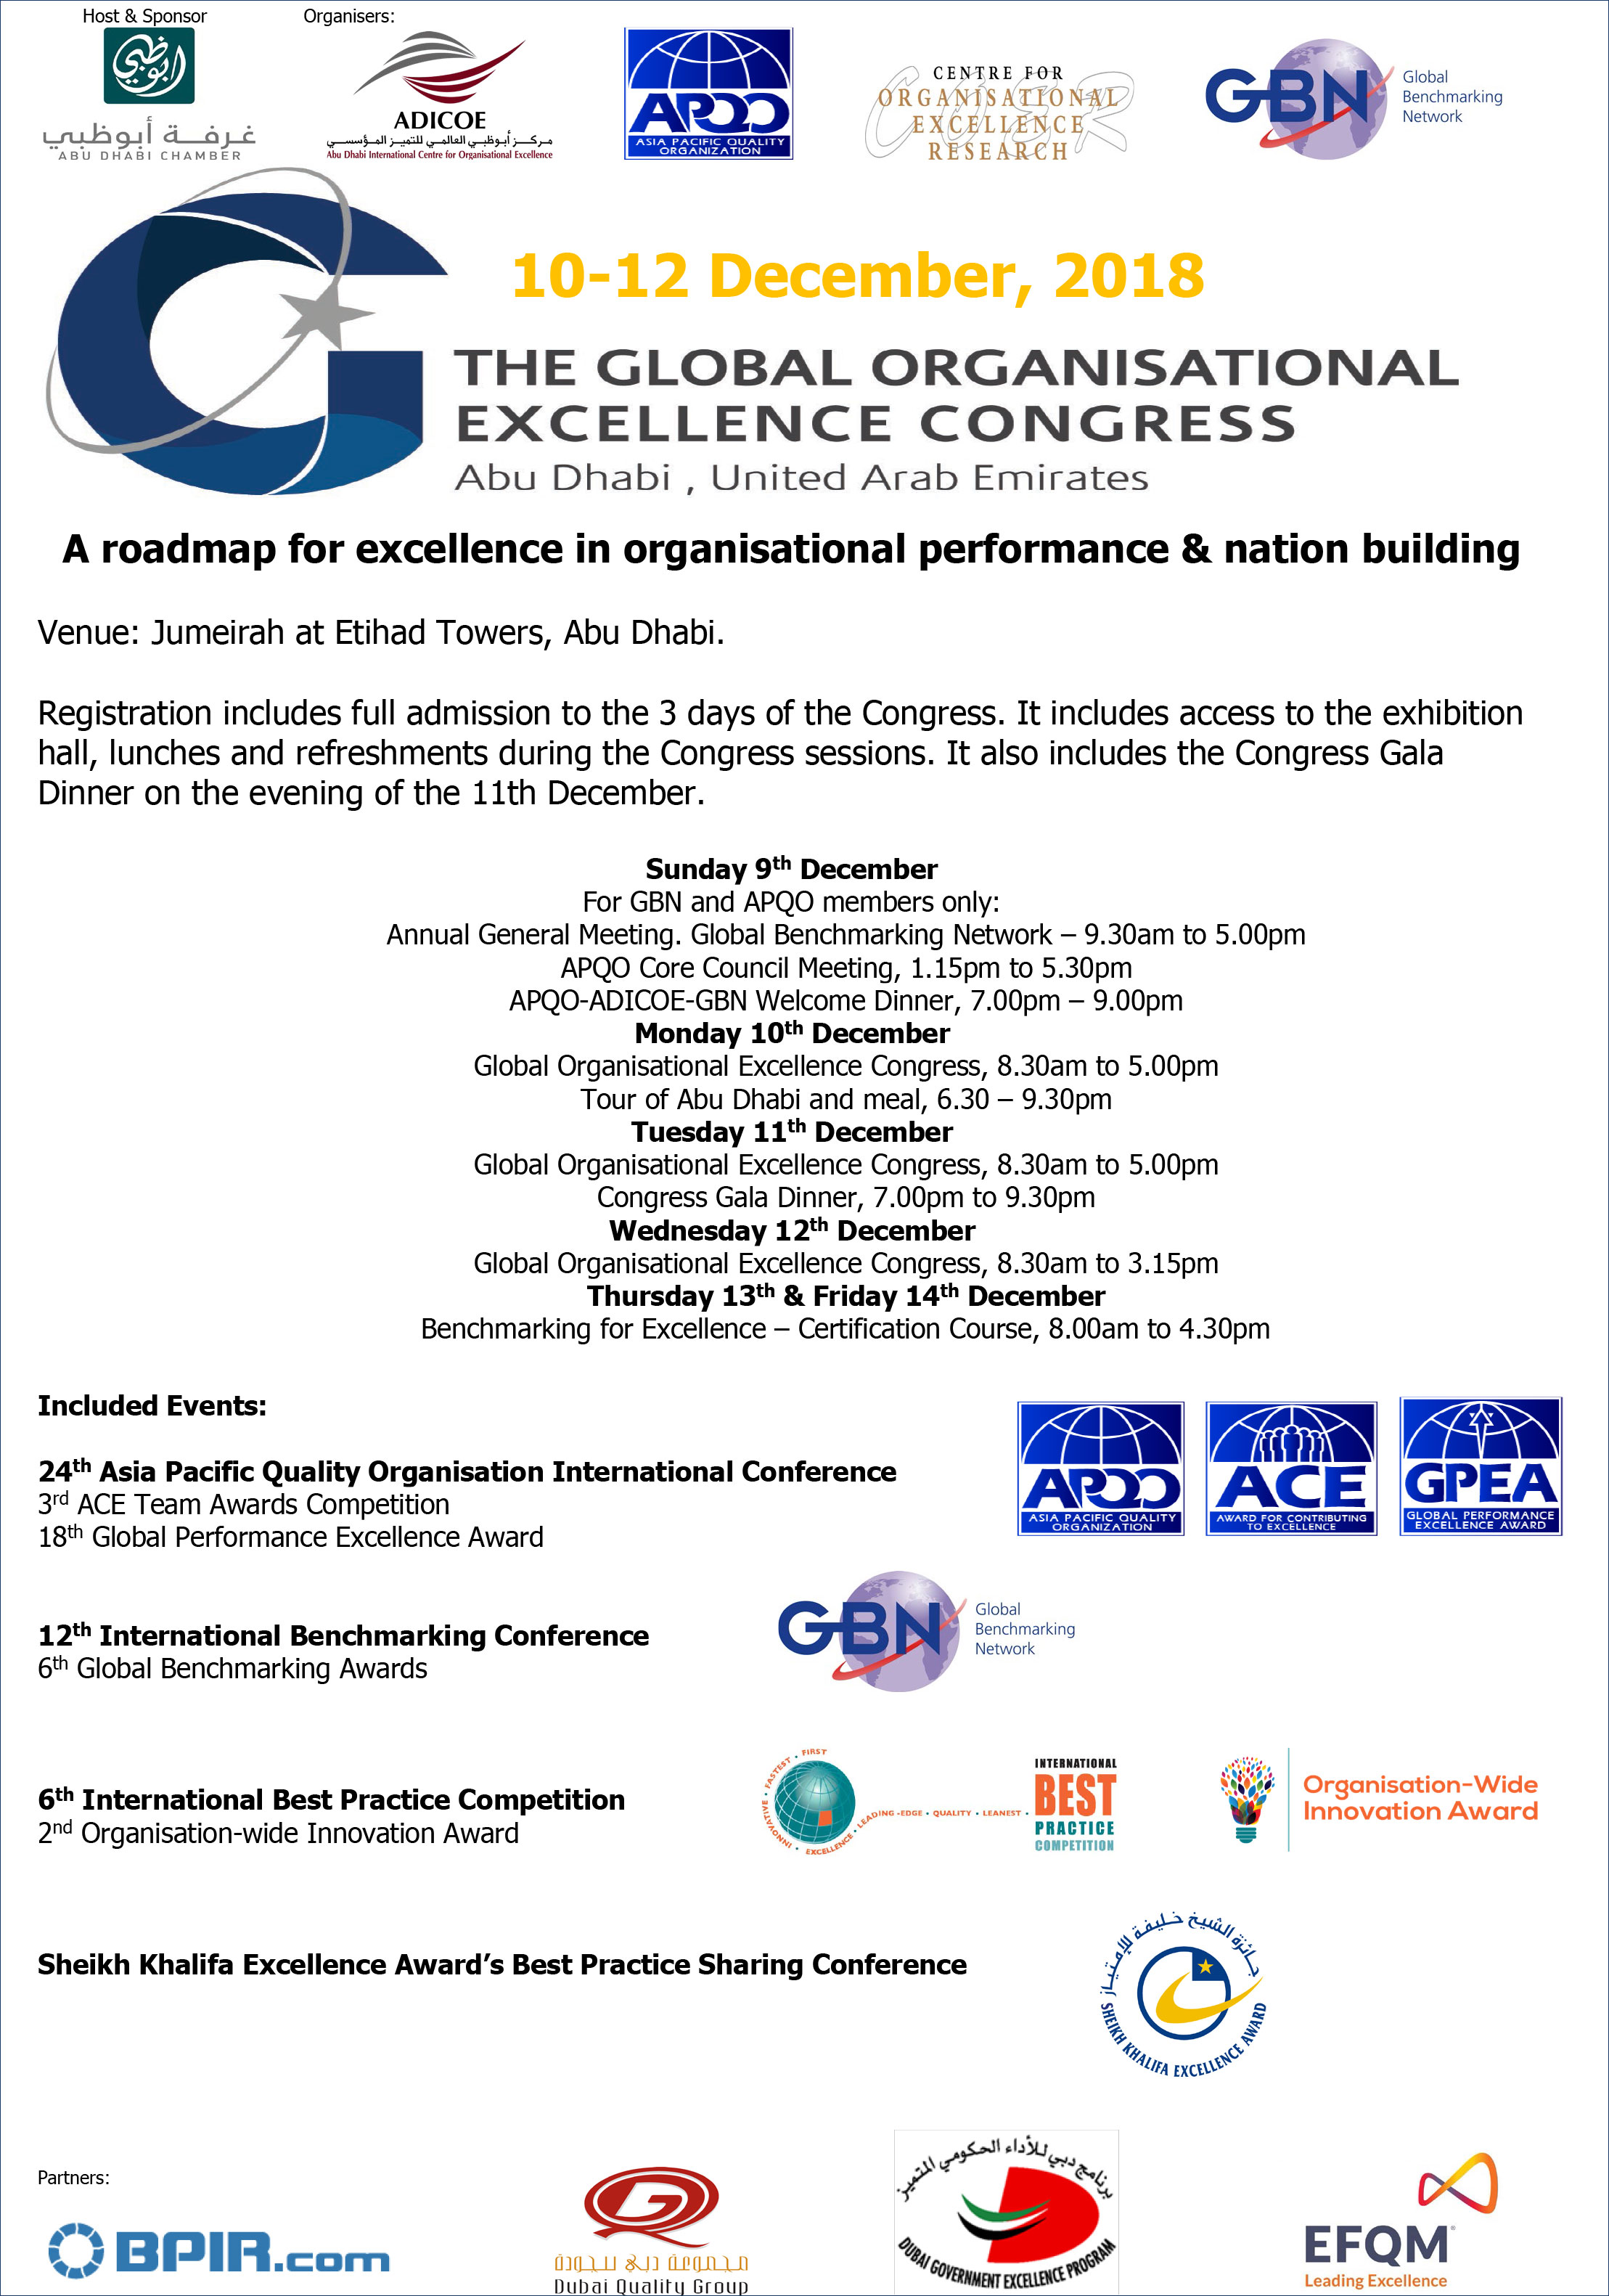 The Global Organisational Excellence Congress | 10-12 December 2018 | Abu Dhabi